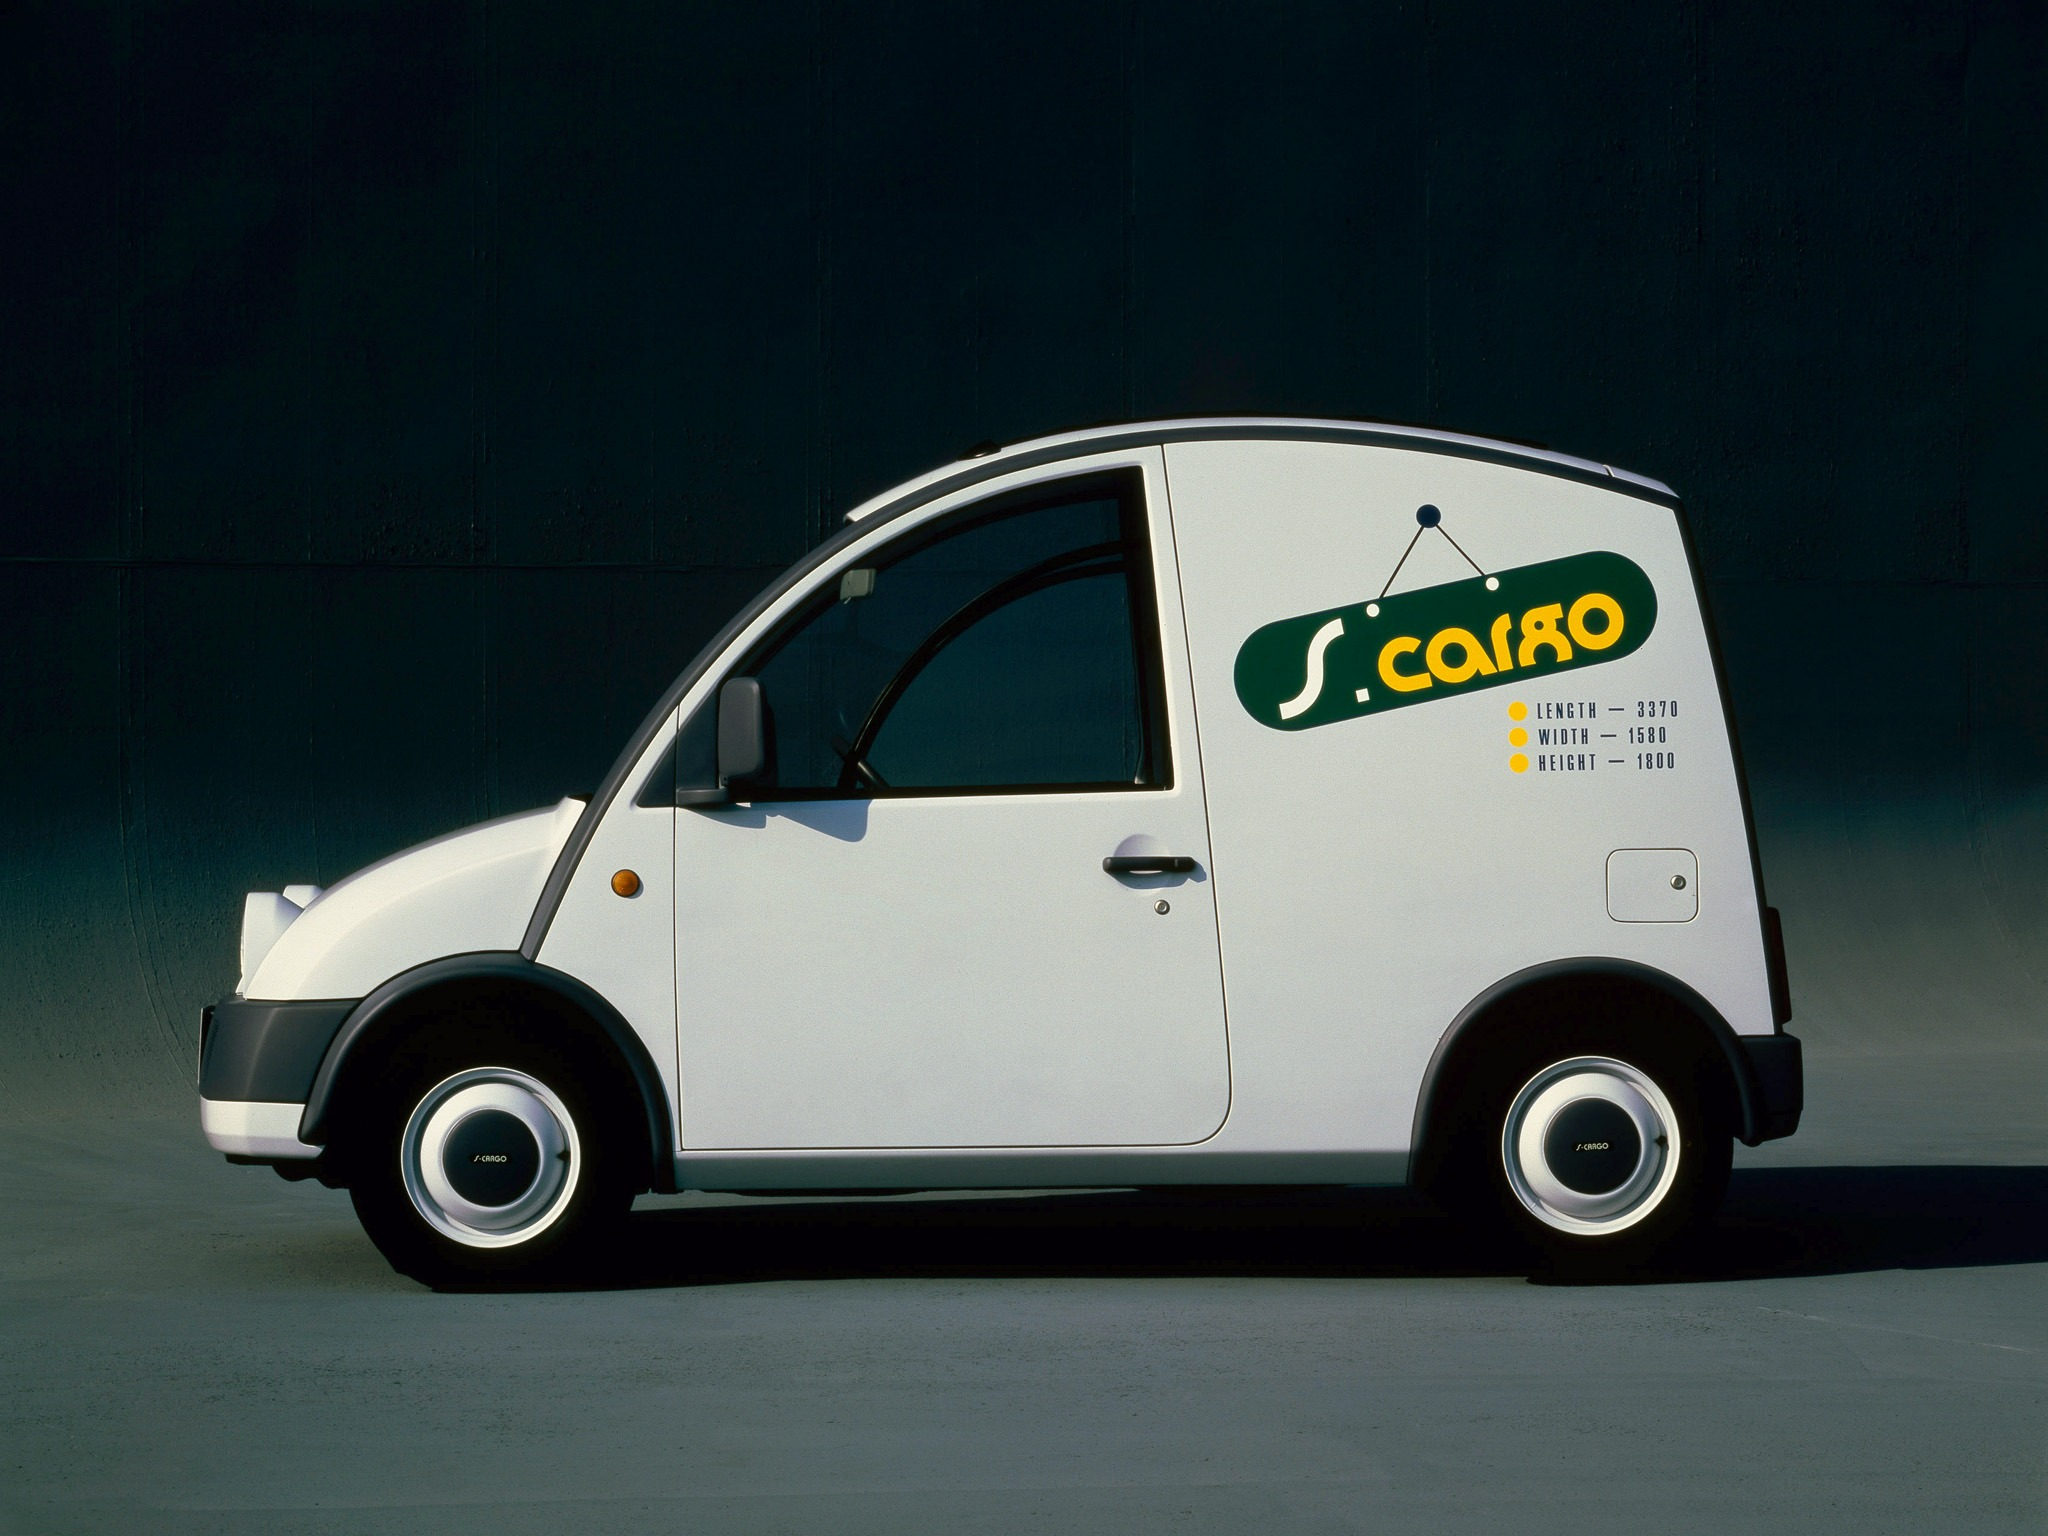 Volvo Near Me >> Nissan S-Cargo Concept (1987) - Old Concept Cars